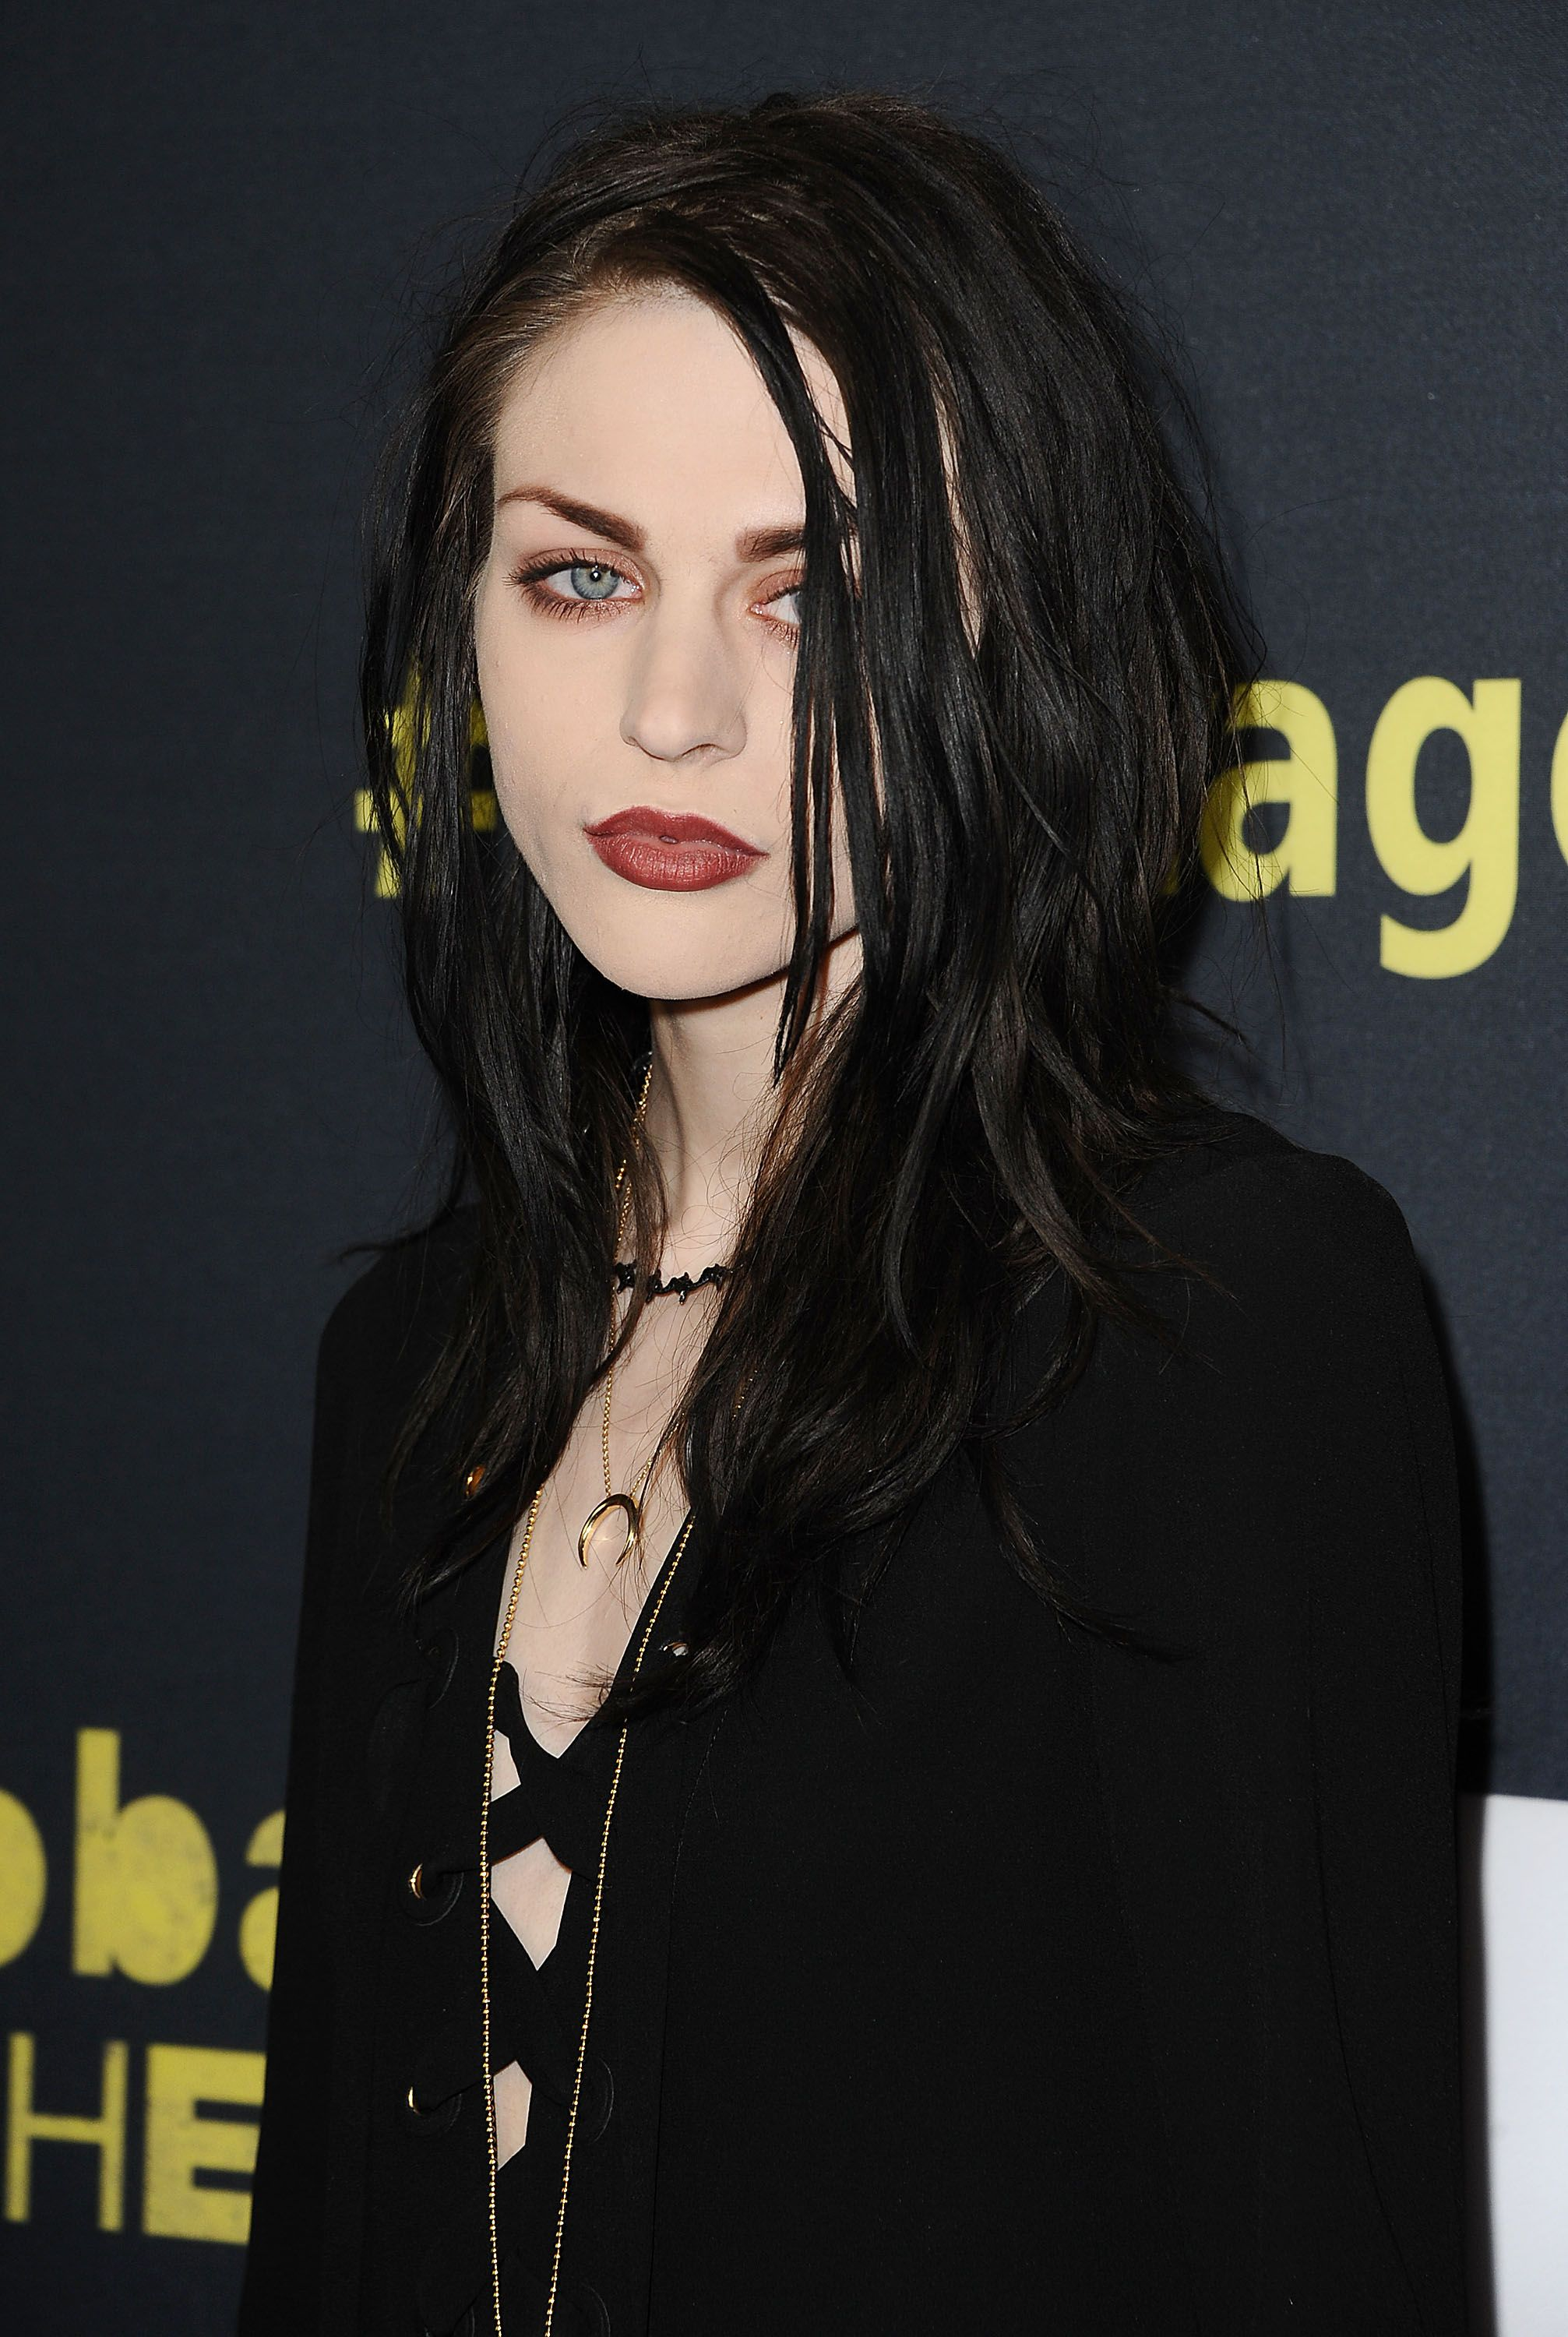 """Frances Bean Cobain at the premiere of """"Kurt Cobain: Montage Of Heck"""" in 2015 in Hollywood, California 